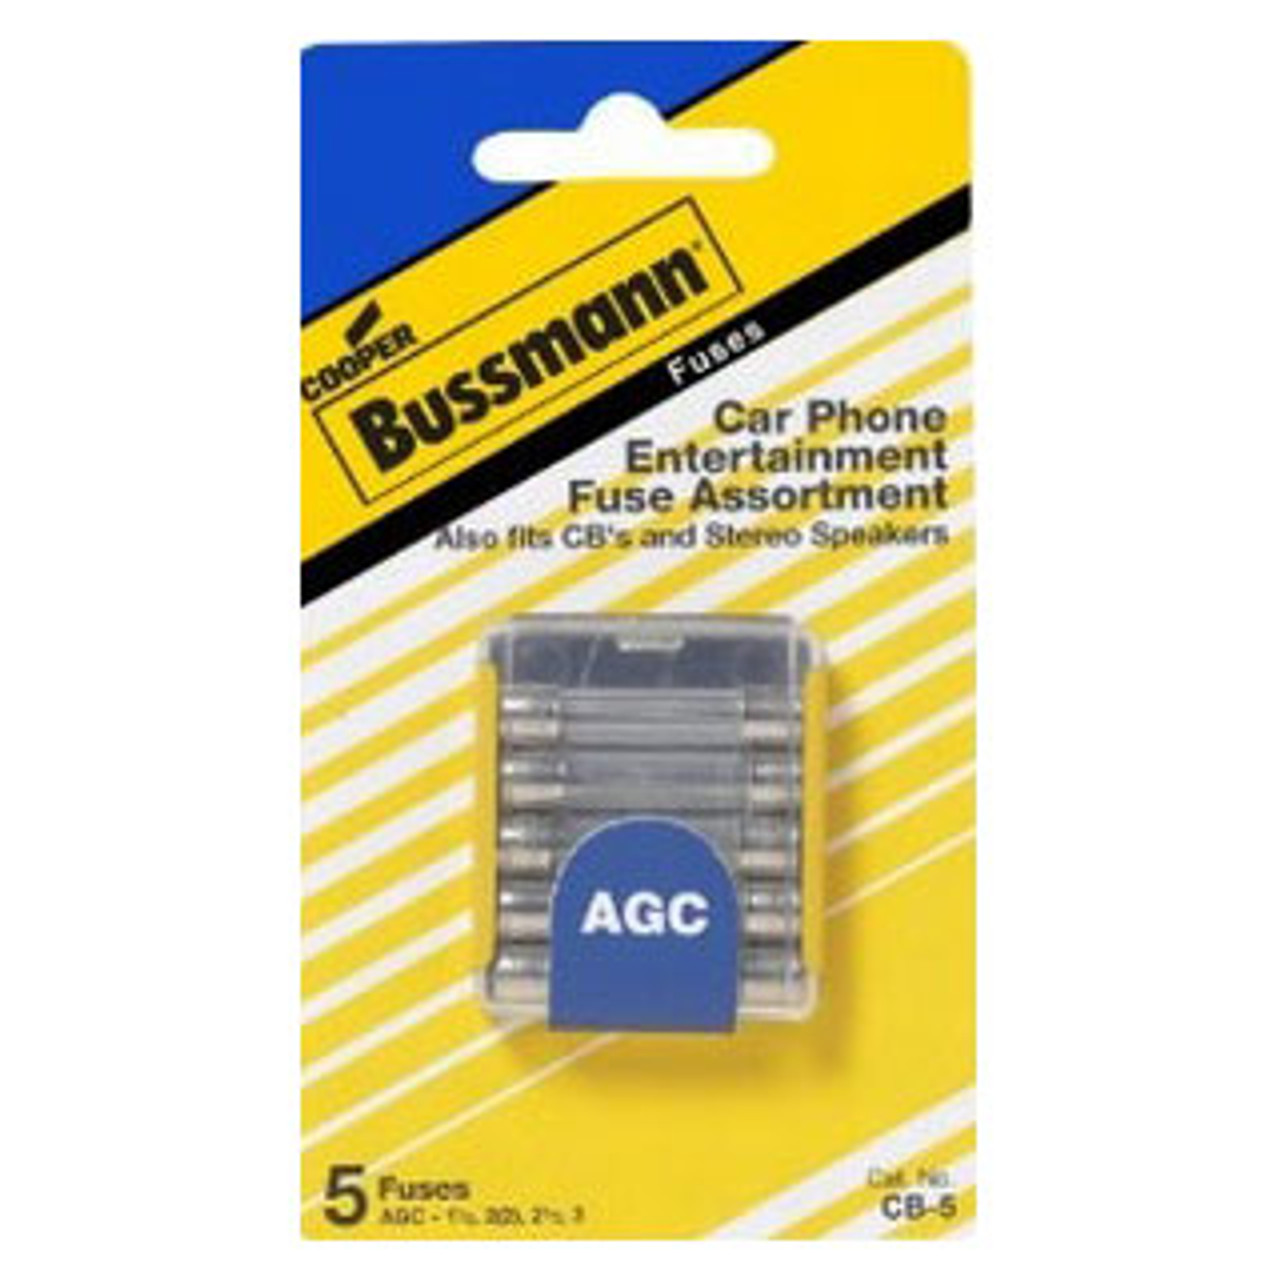 FUSE ASSORTMENT 5 PCS CAR PHONE AGC FUSES